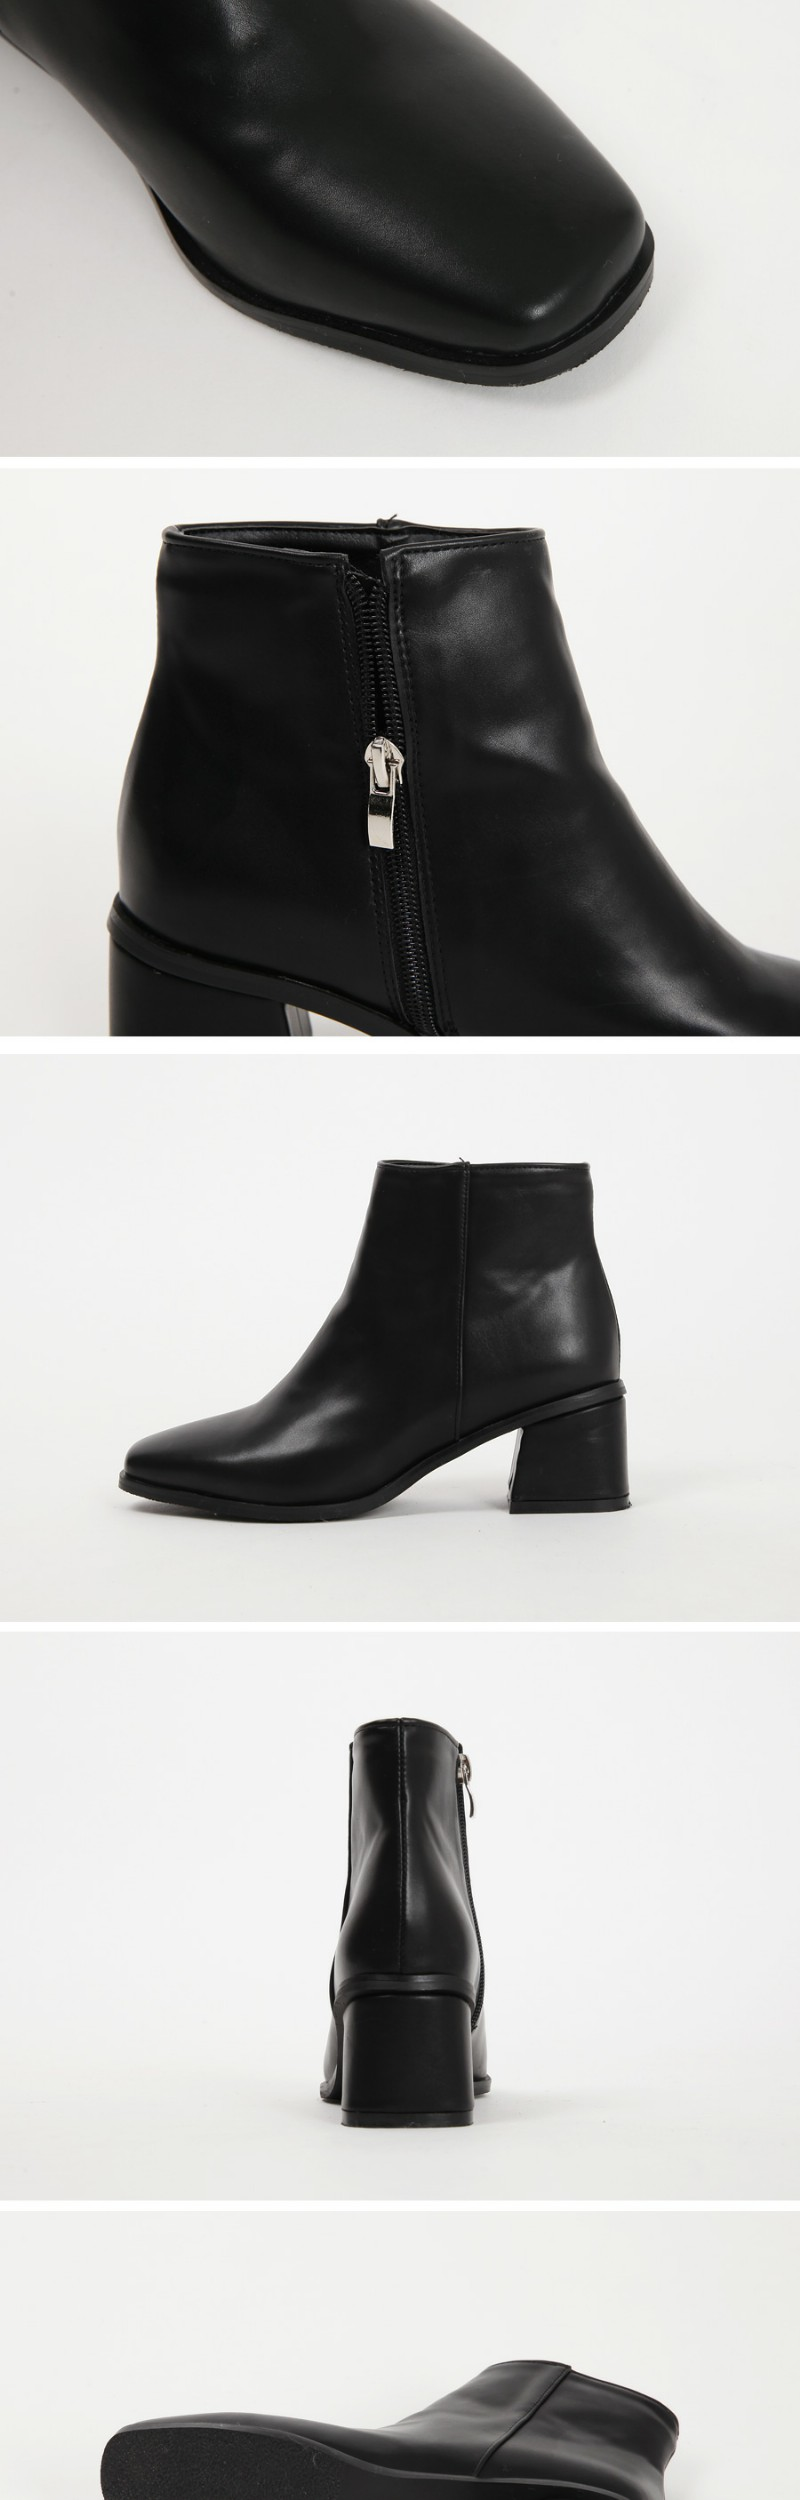 Stereo ankle boots_M (size : 225,230,235,240,245,250)